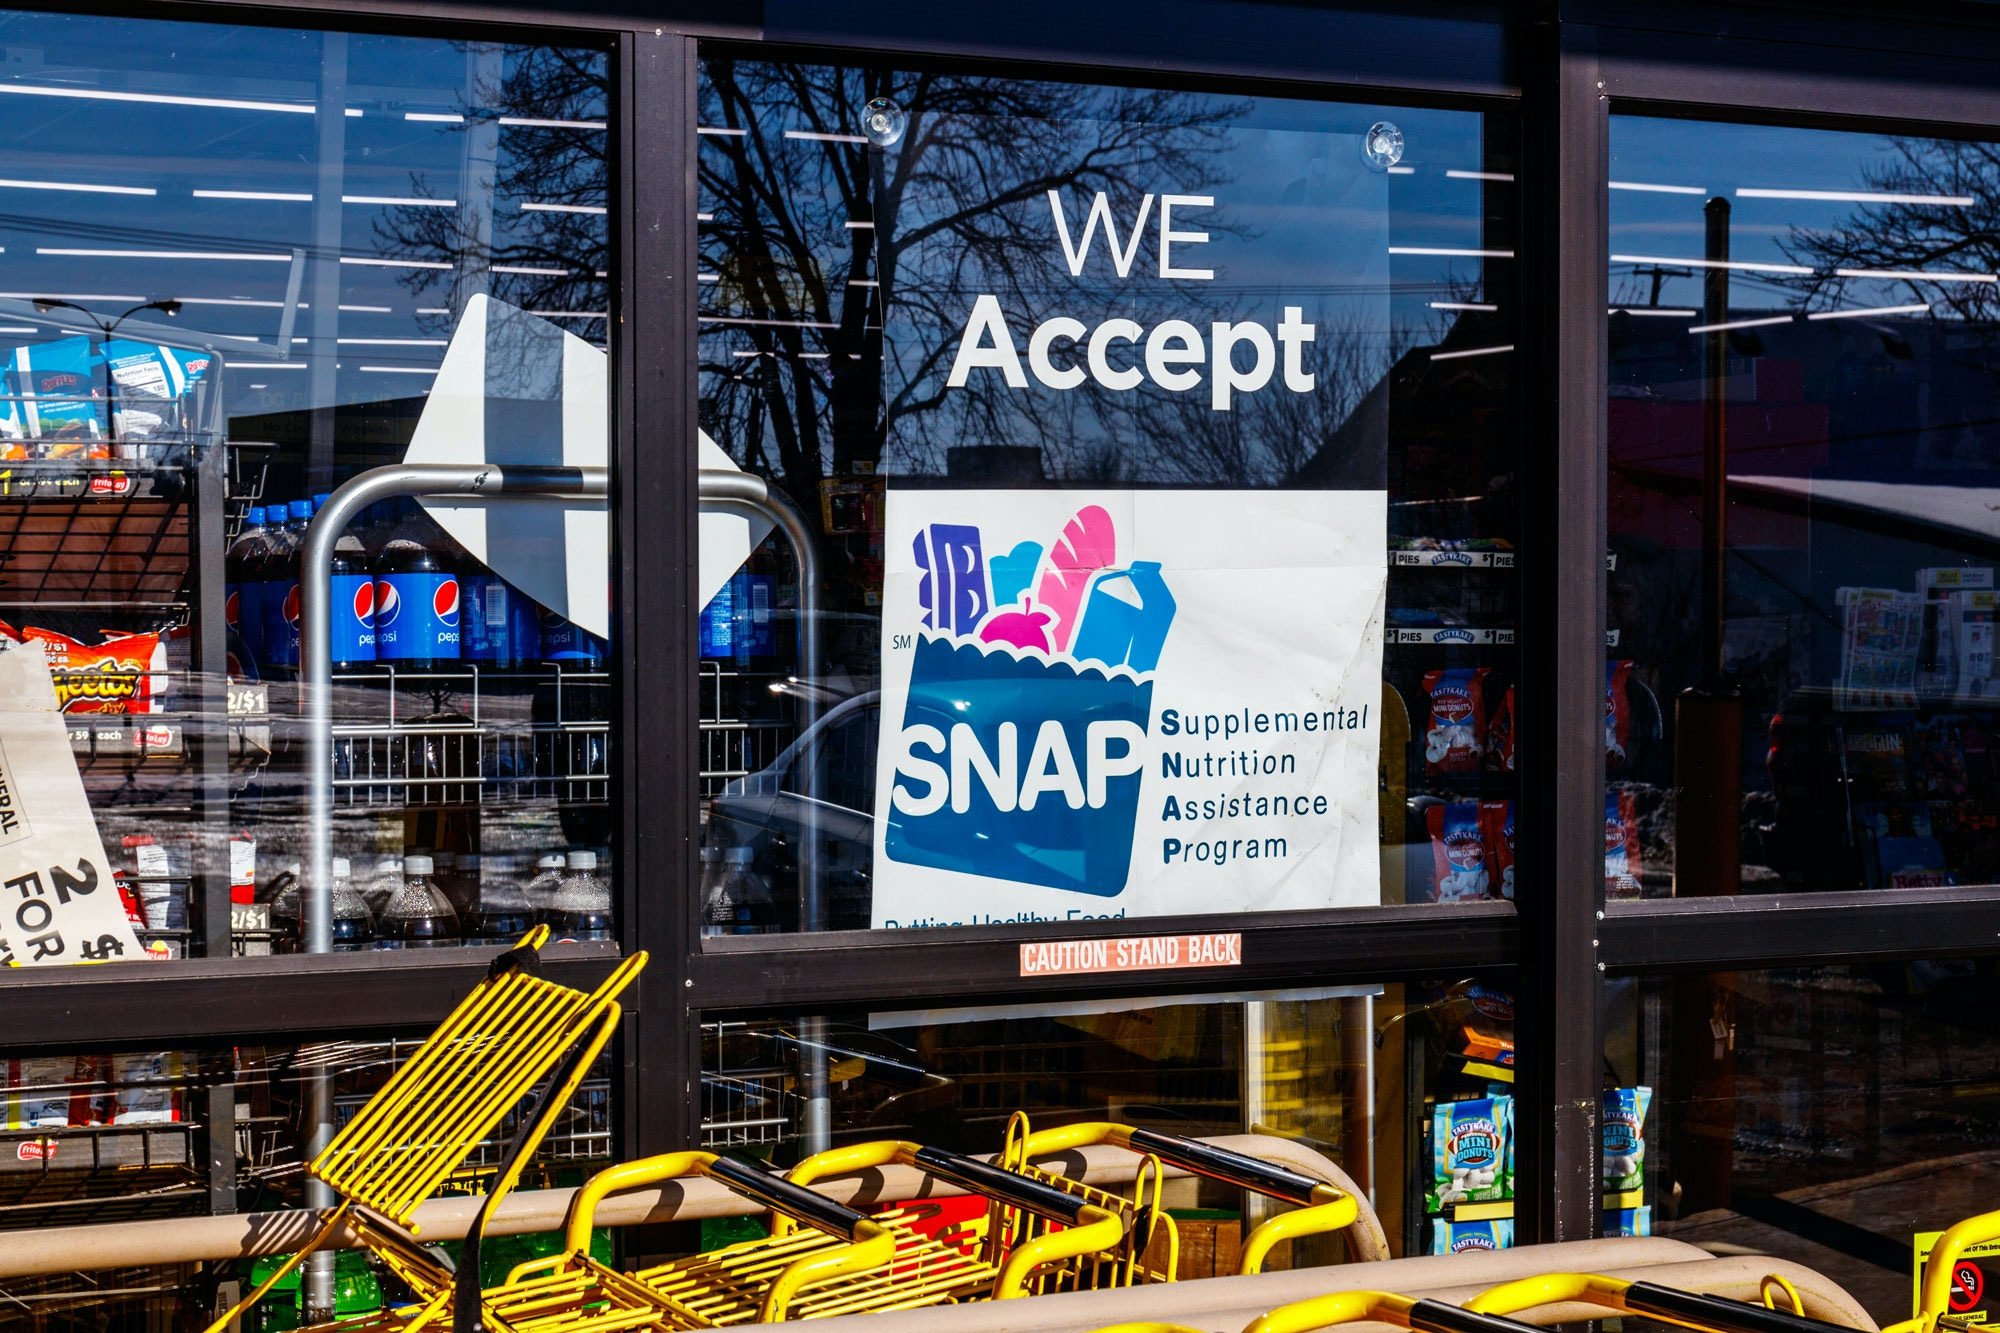 Muncie - Circa January 2018: A Sign at a Retailer - We Accept SNAP